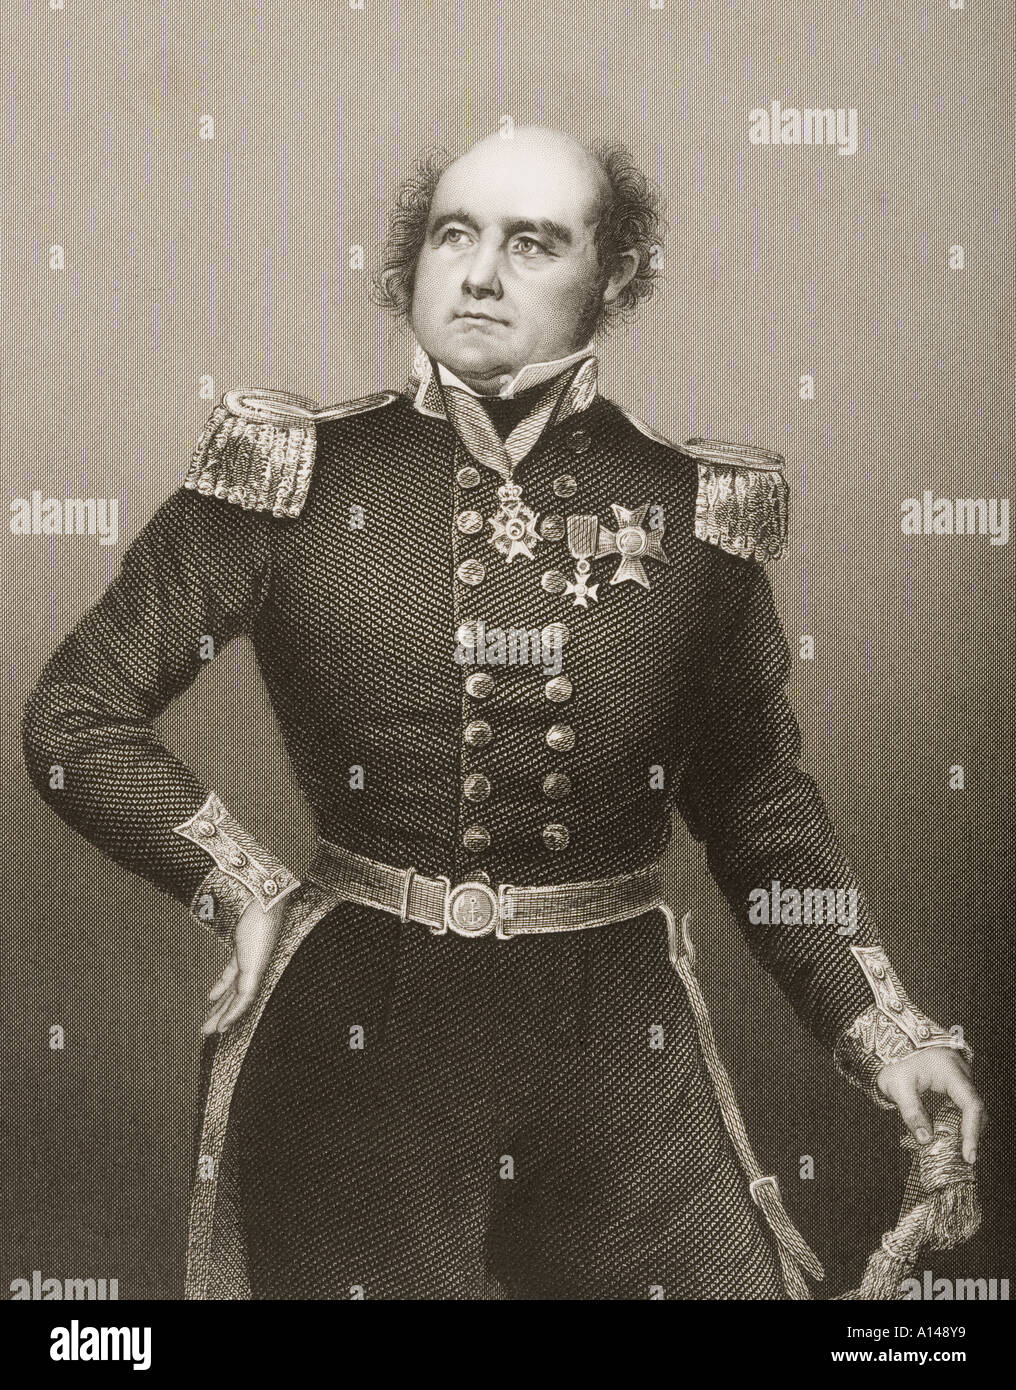 Sir John Franklin, 1786 - 1847.  English Royal Navy officer and explorer of the Arctic. - Stock Image